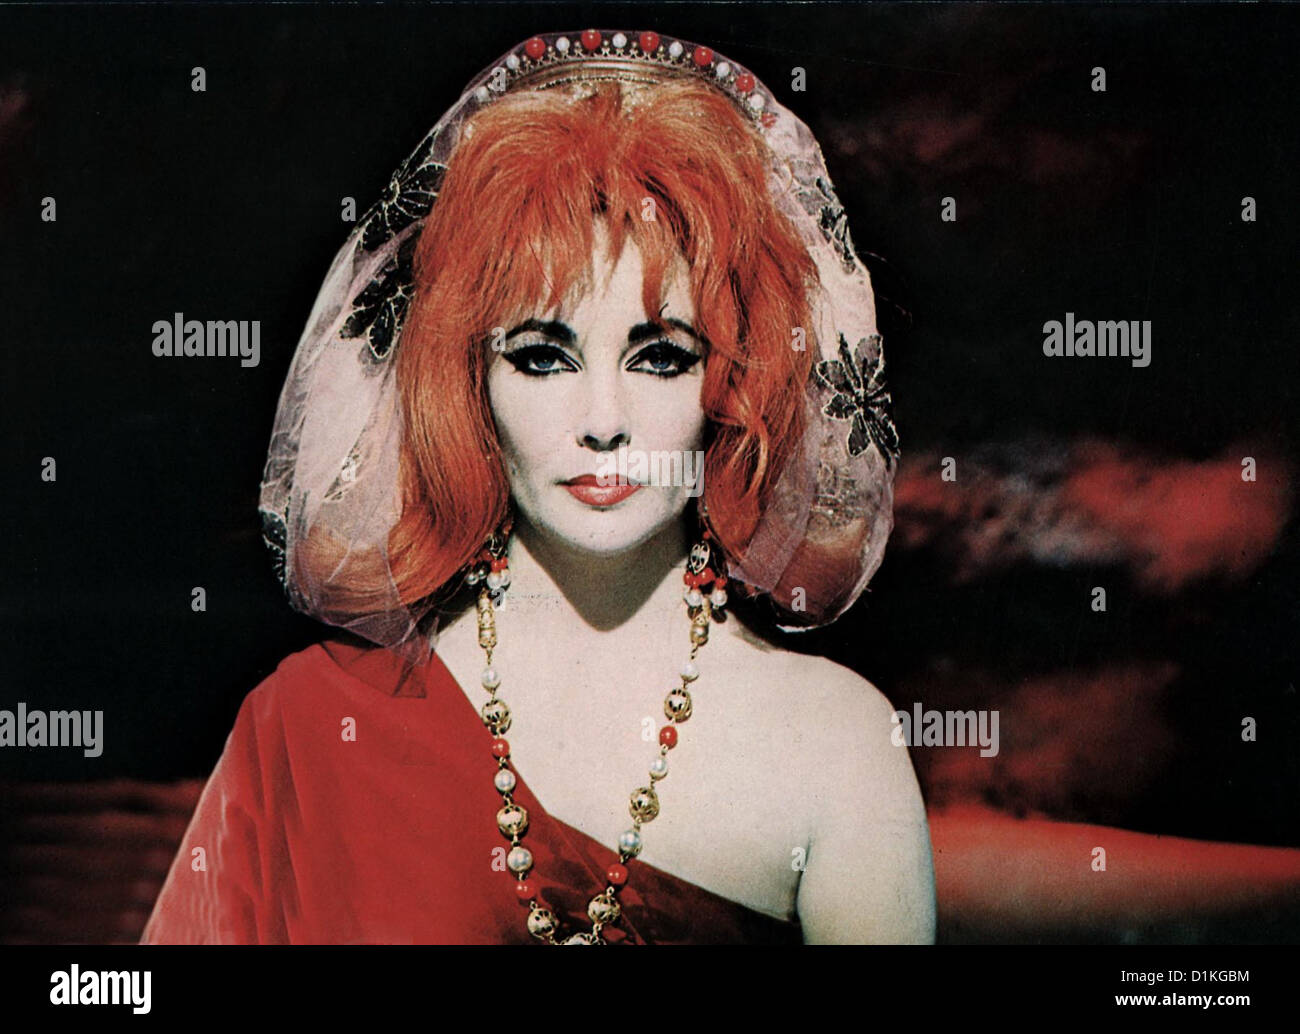 Doktor Faustus   Doctor Faustus   Elizabeth Taylor *** Local Caption *** 1967  -- - Stock Image